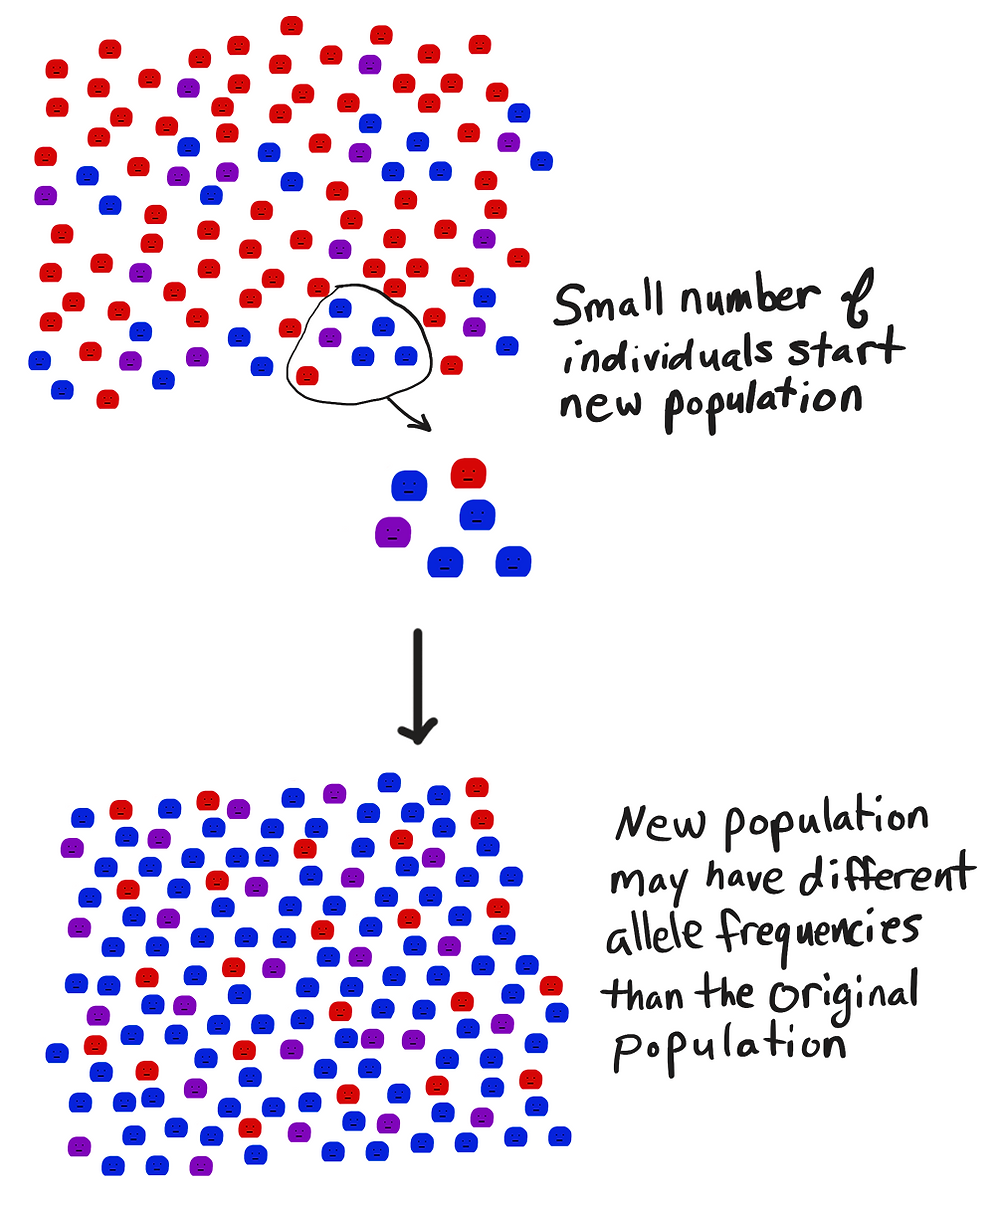 In the founder effect, a new population has different allele frequencies than the original population